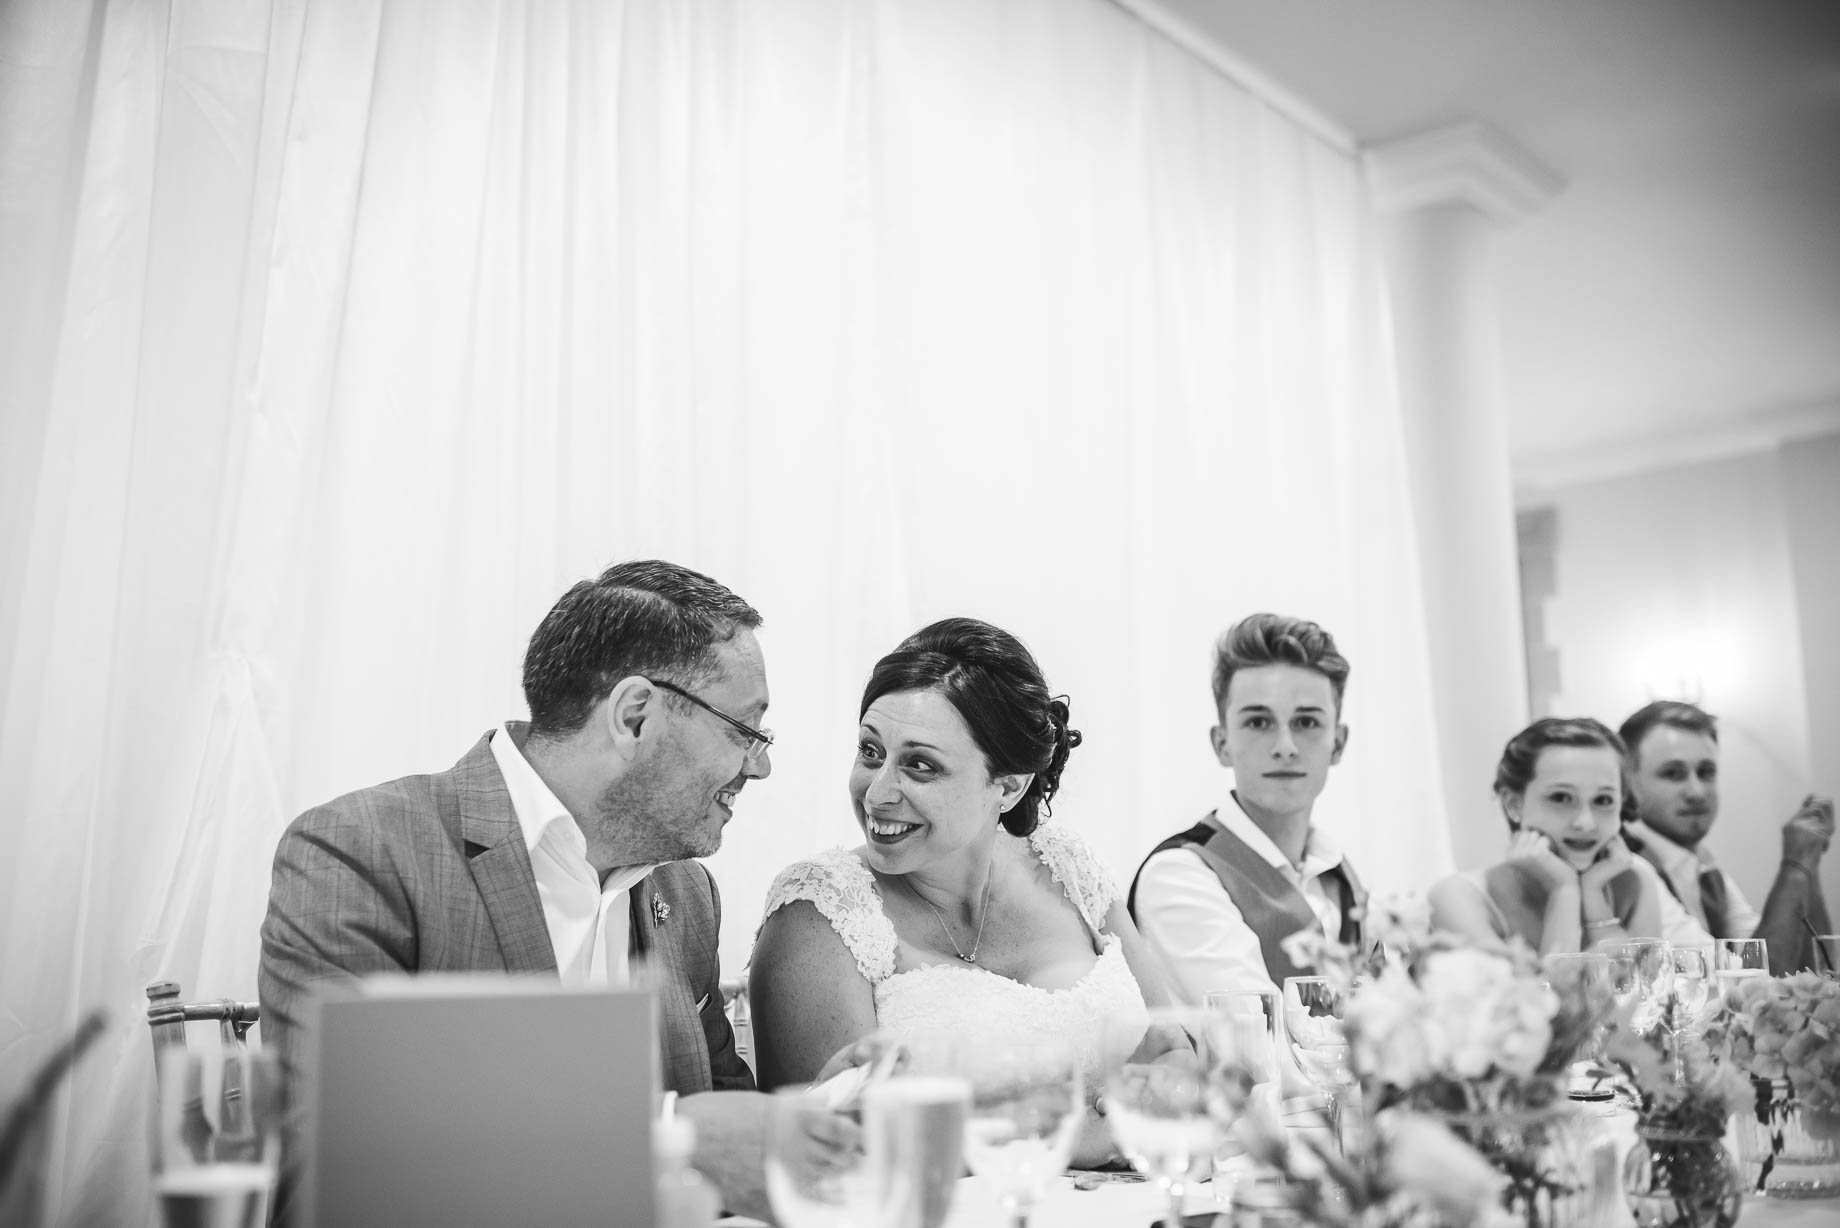 Luton Hoo wedding photography by Guy Collier Photography - Lauren and Gem (139 of 178)